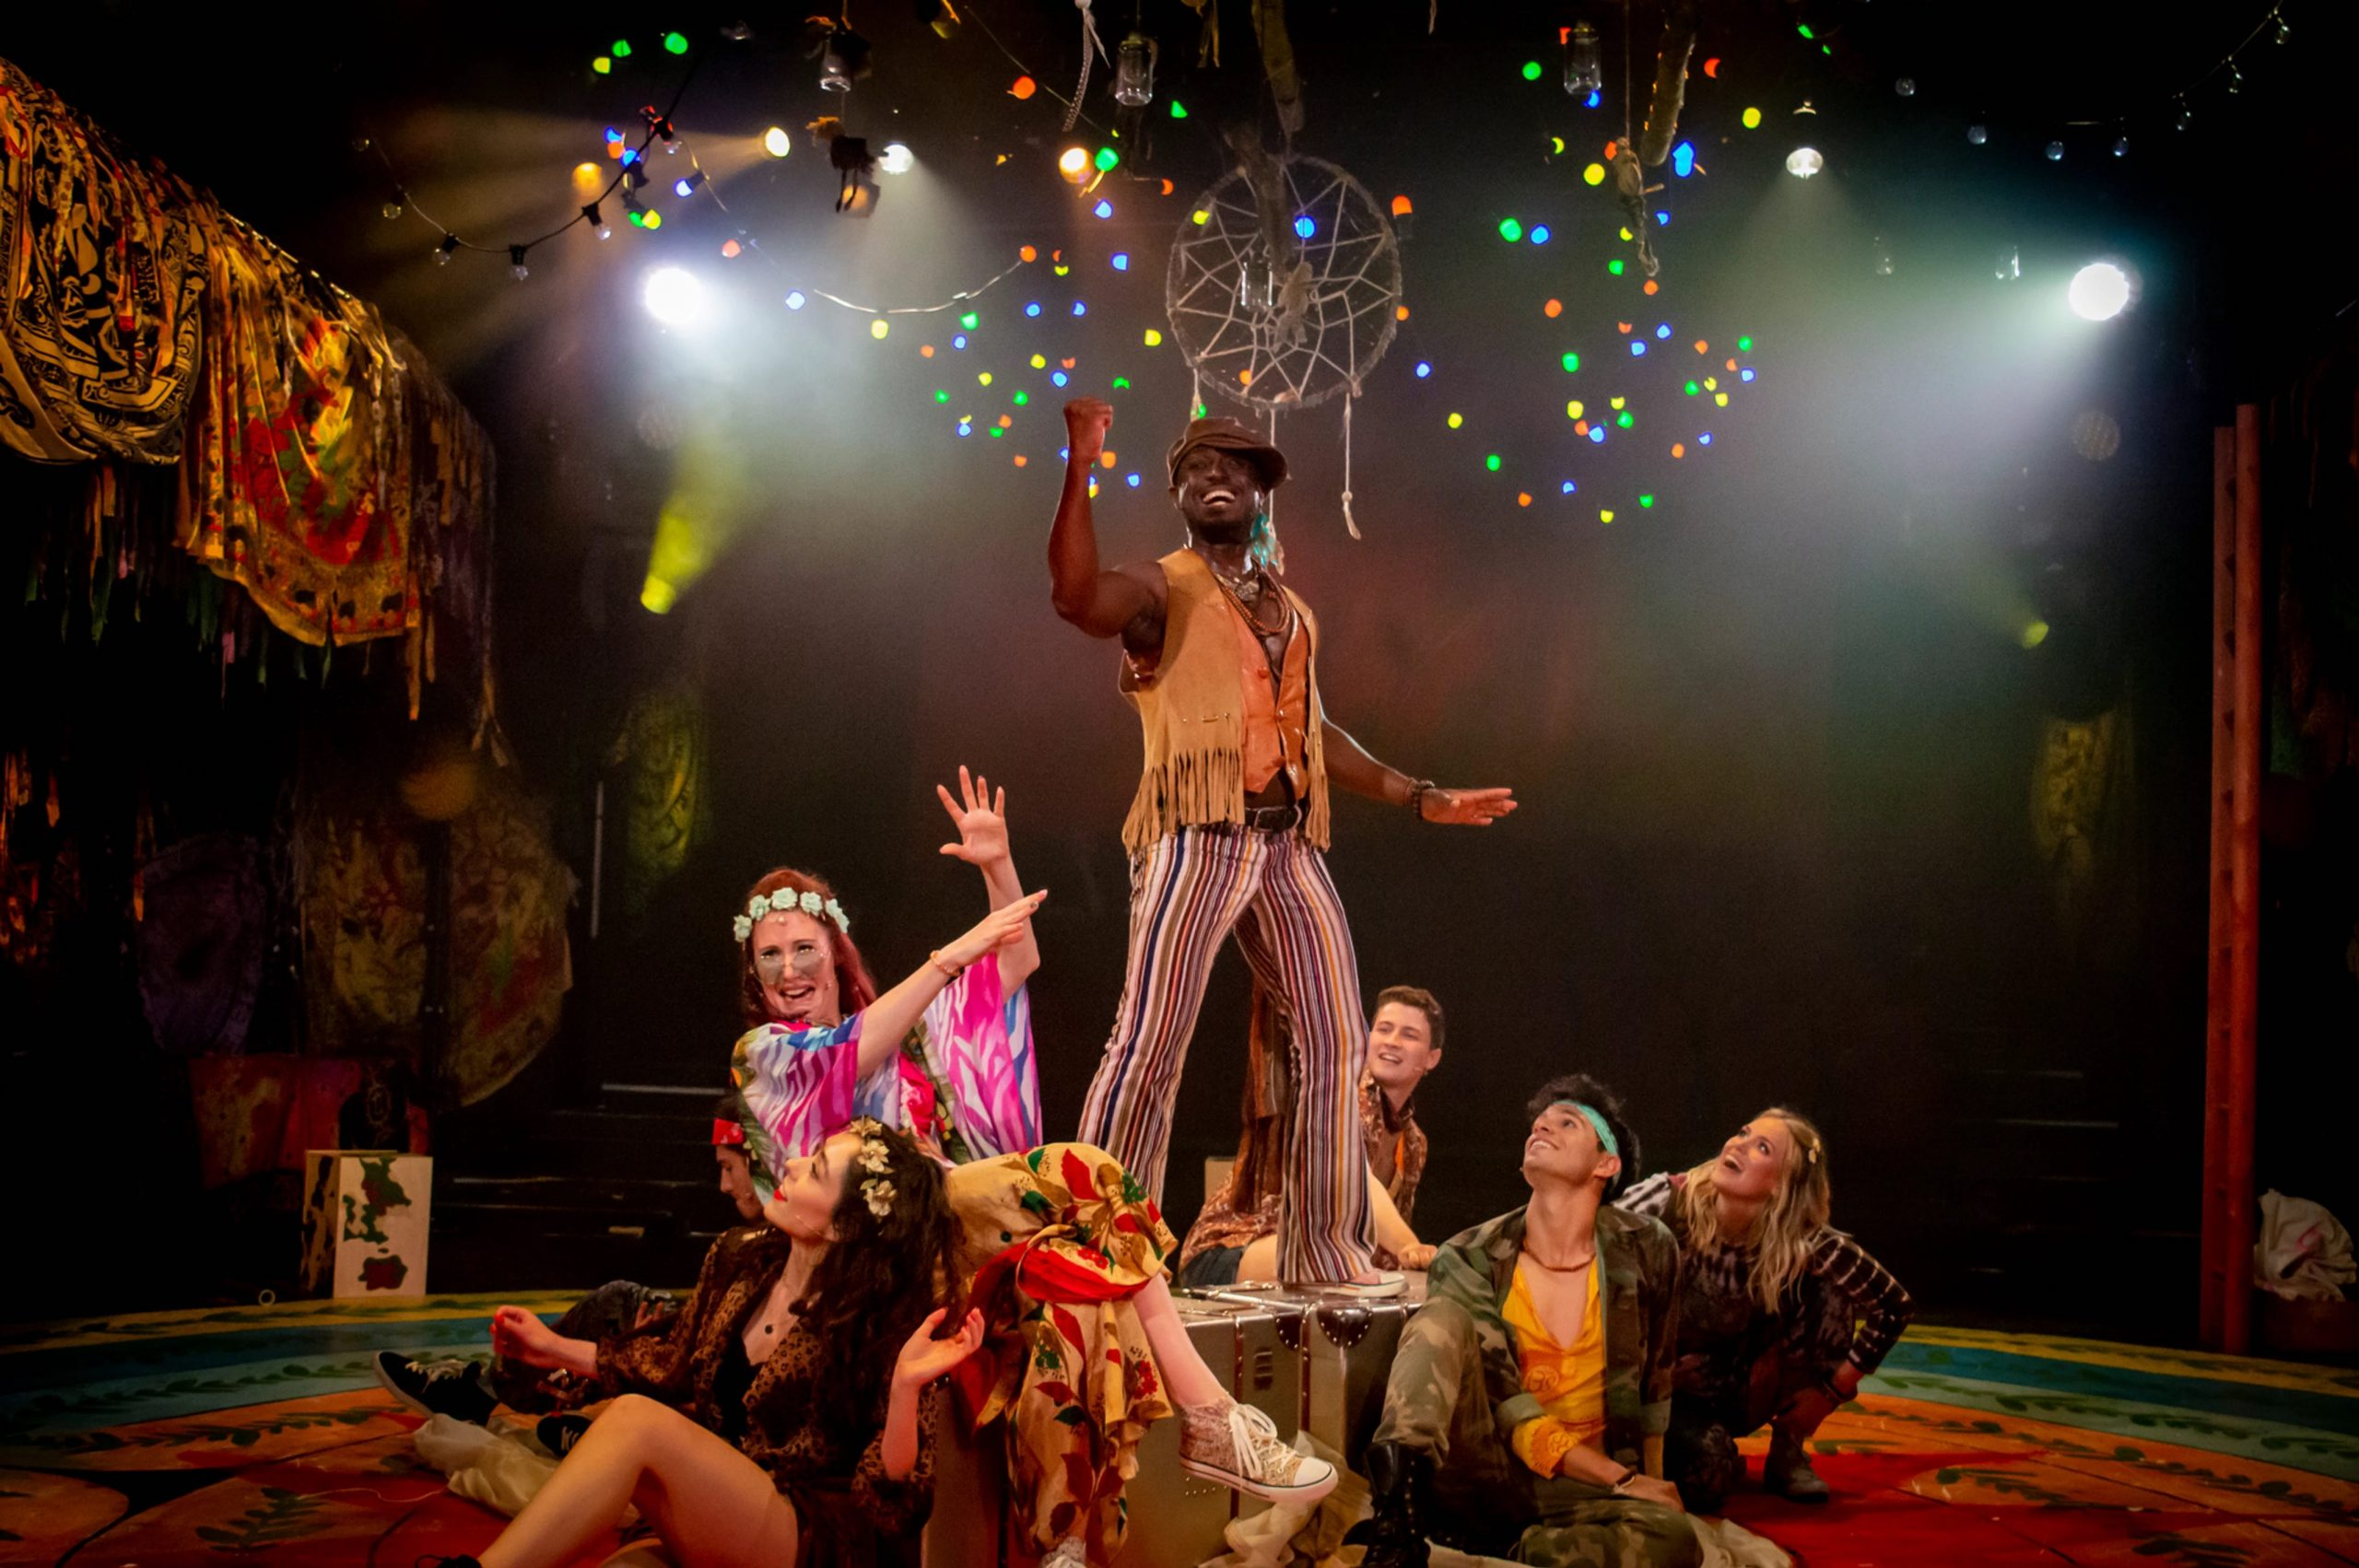 Stephen Schwartz's Pippin at Charing Cross Theatre - review